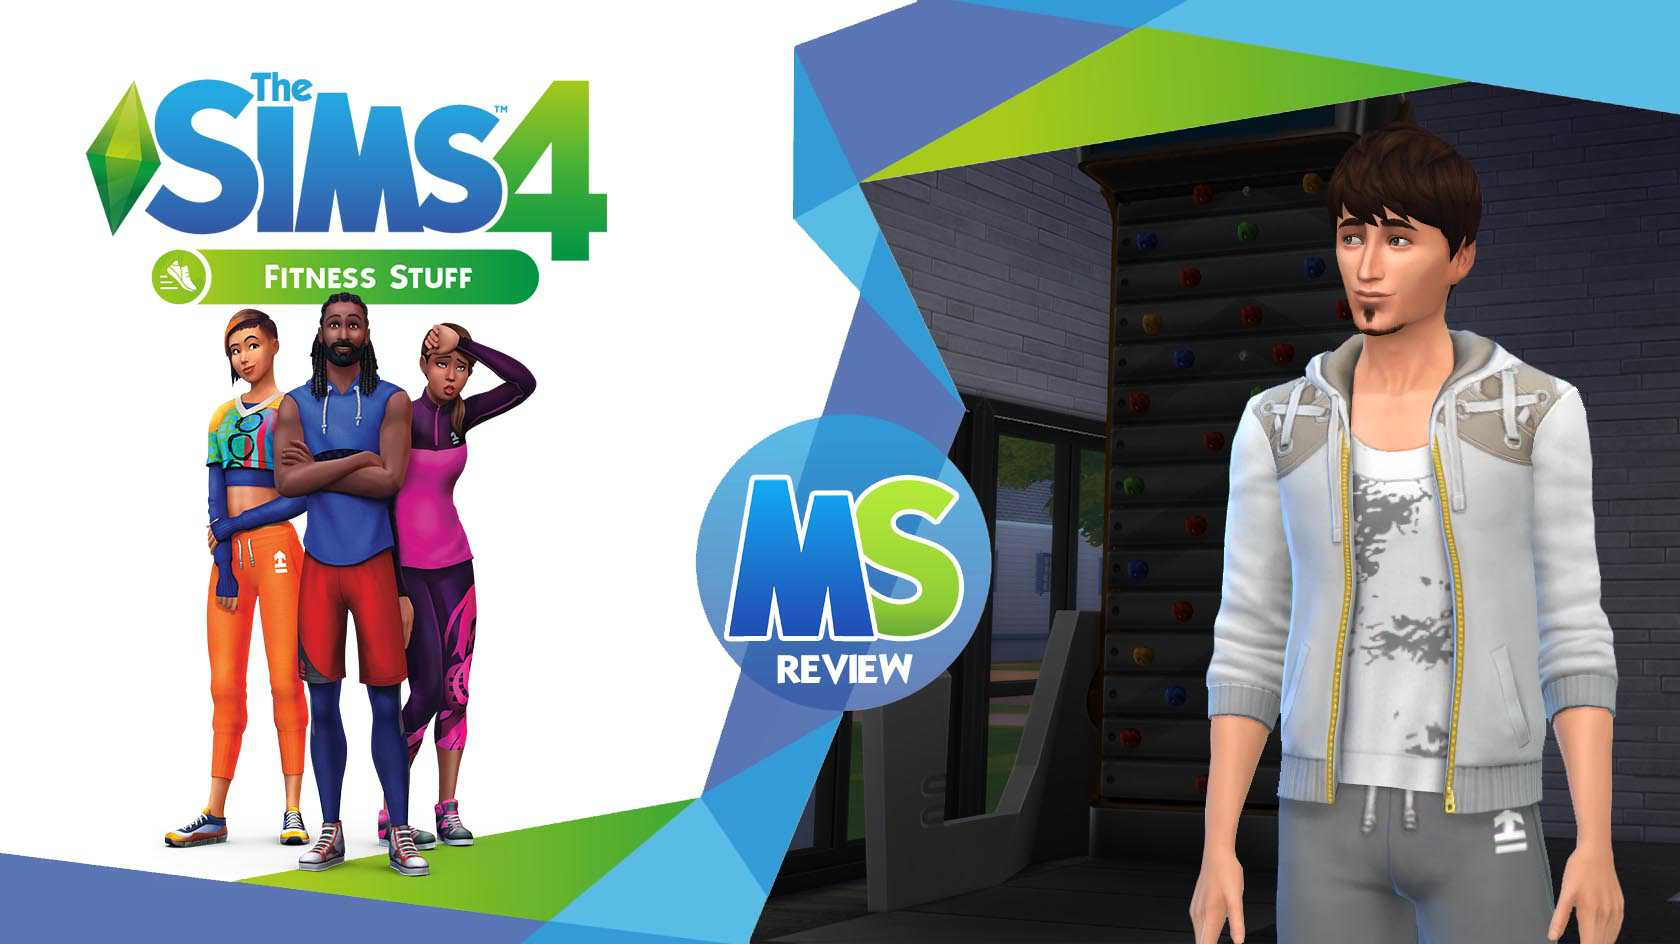 The Sims 4 Fitness Stuff Pack